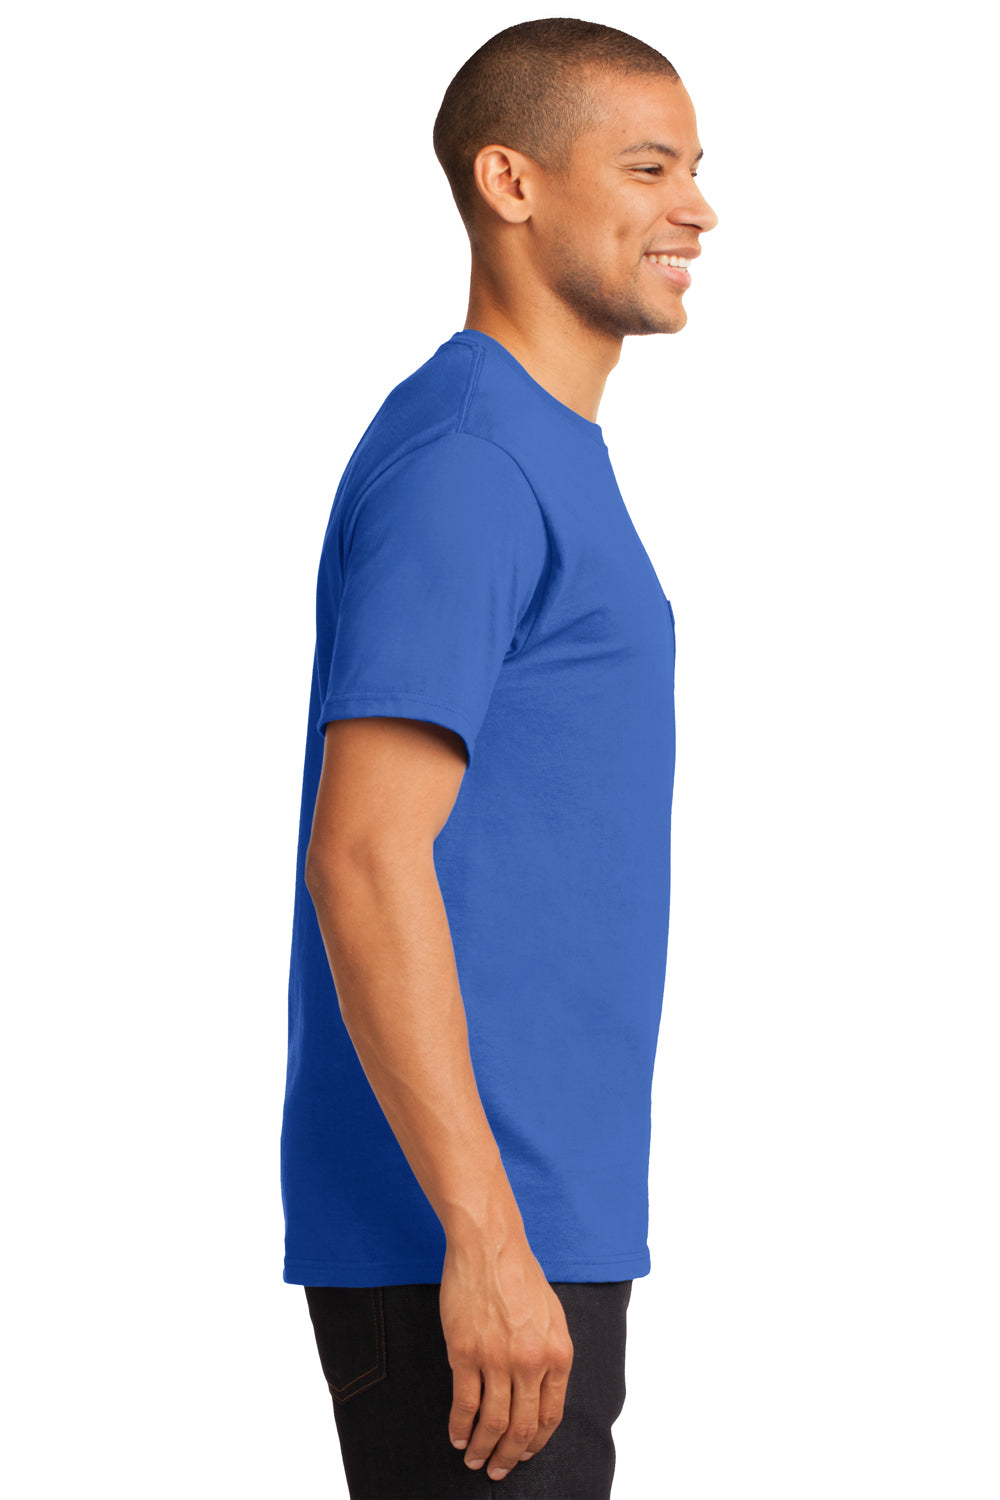 Port & Company PC61P Mens Essential Short Sleeve Crewneck T-Shirt w/ Pocket Royal Blue Side